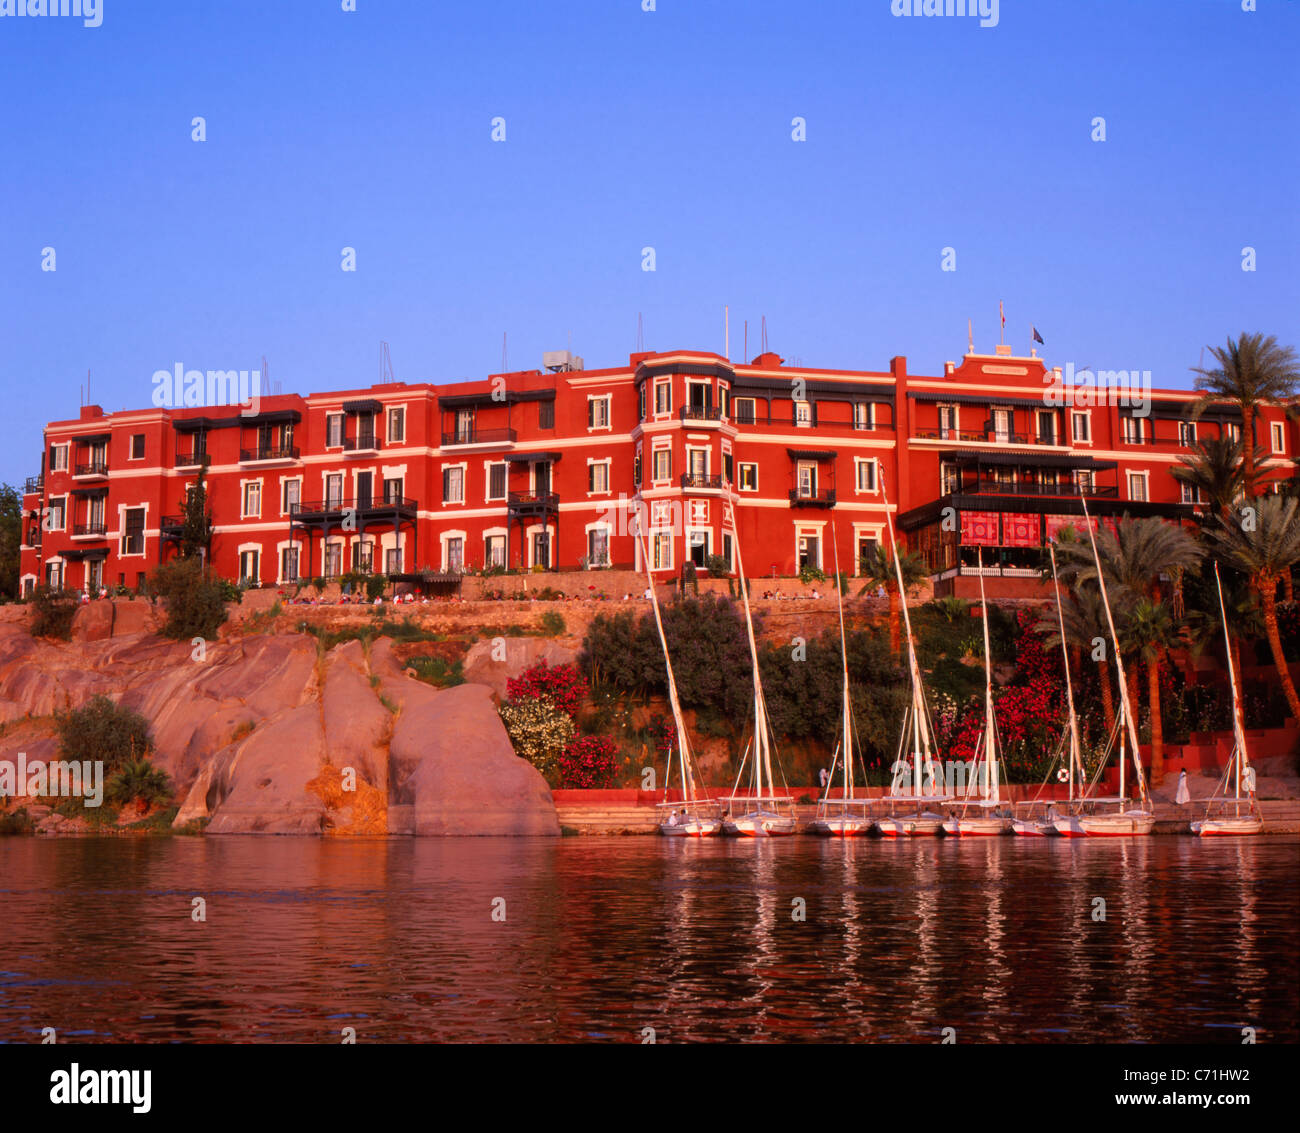 Old Cataract Hotel Aswan Egypt Stock Photo 38759310 Alamy